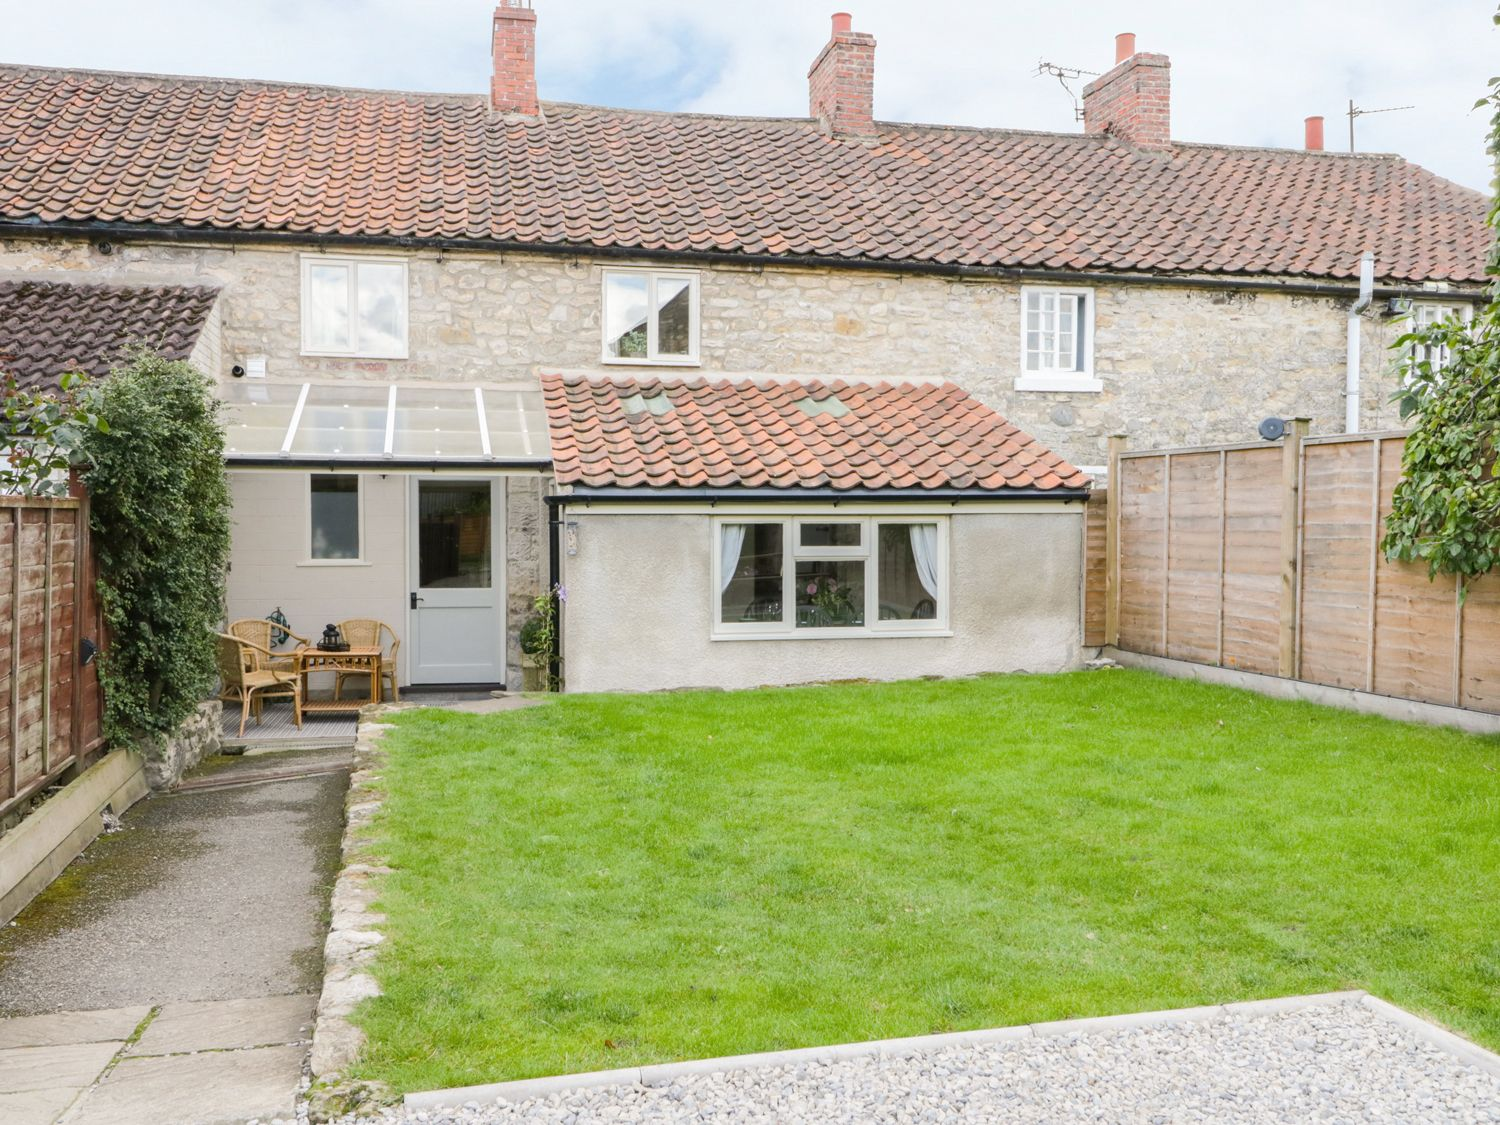 Photo of The Old Cartway ( Ref 964829 ) Rent Pickering holiday home sleeps 6 - Ryedale self catering accommodation in North Yorkshire